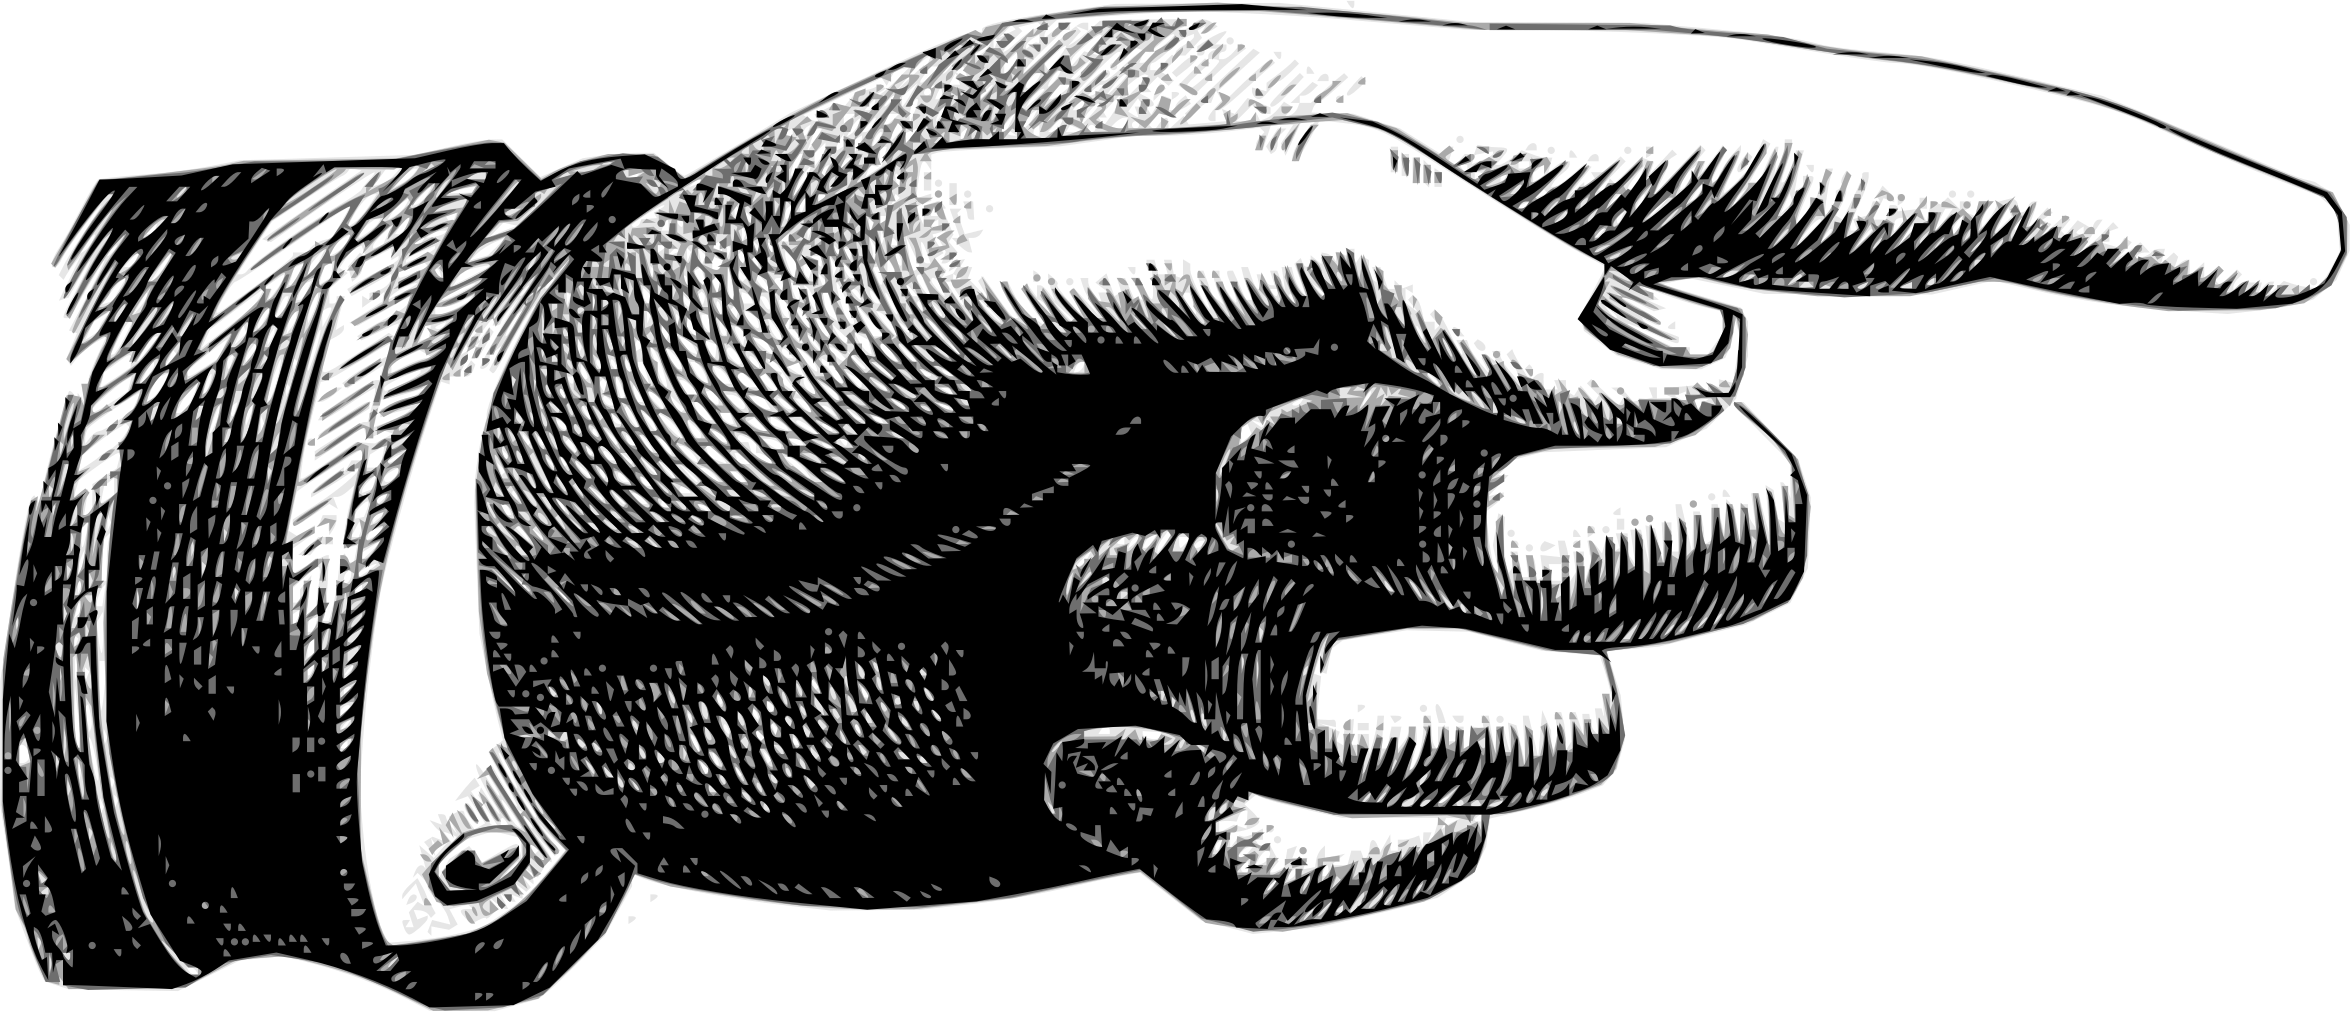 Pointing hand by scyg. Hands clipart signature